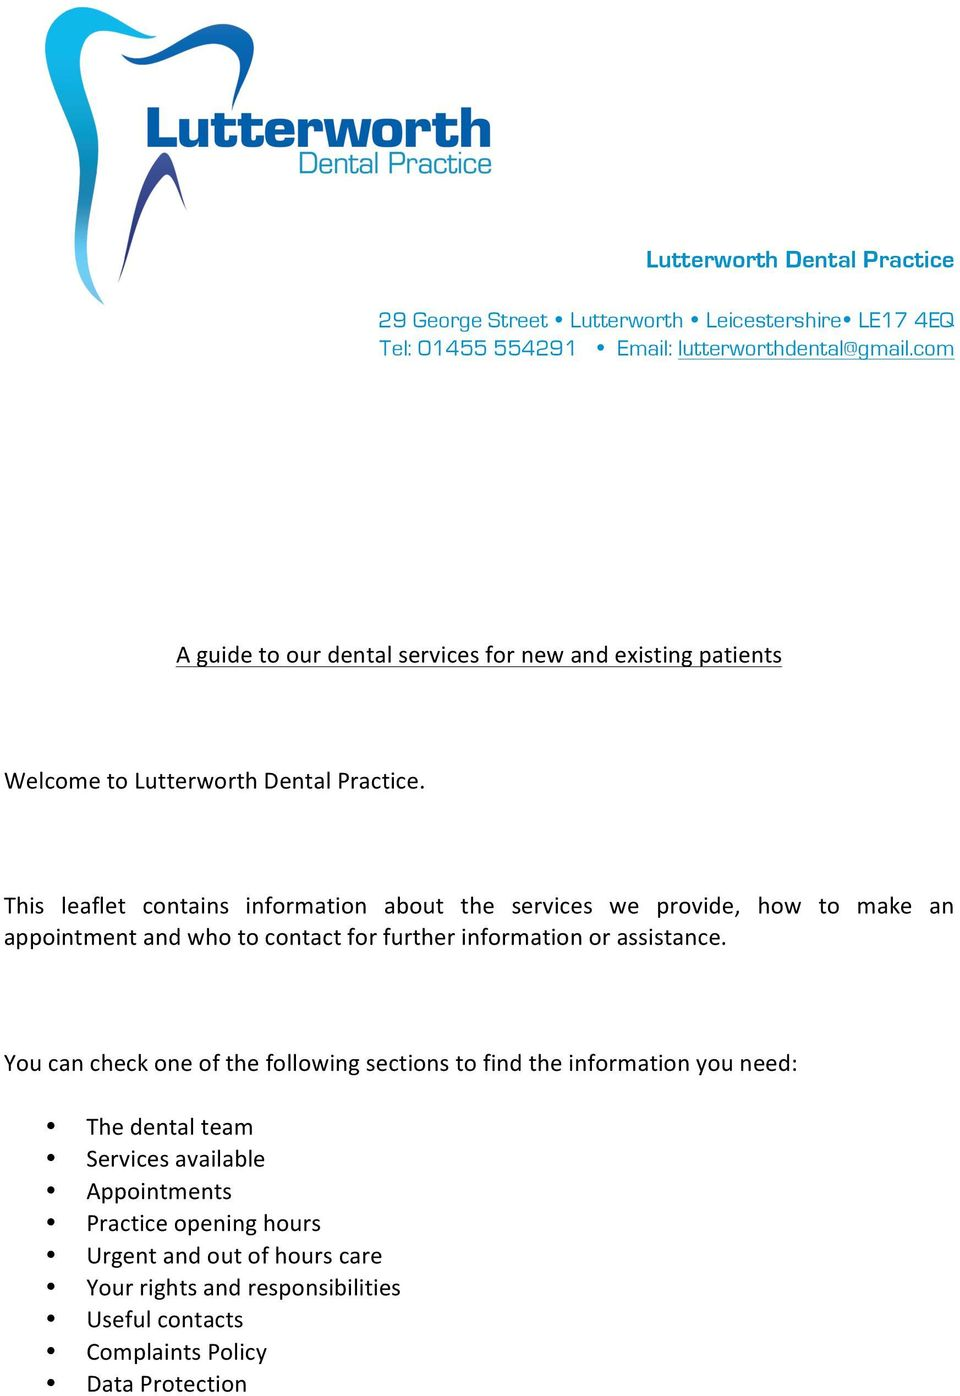 This leaflet contains information about the services we provide, how to make an appointment and who to contact for further information or assistance.